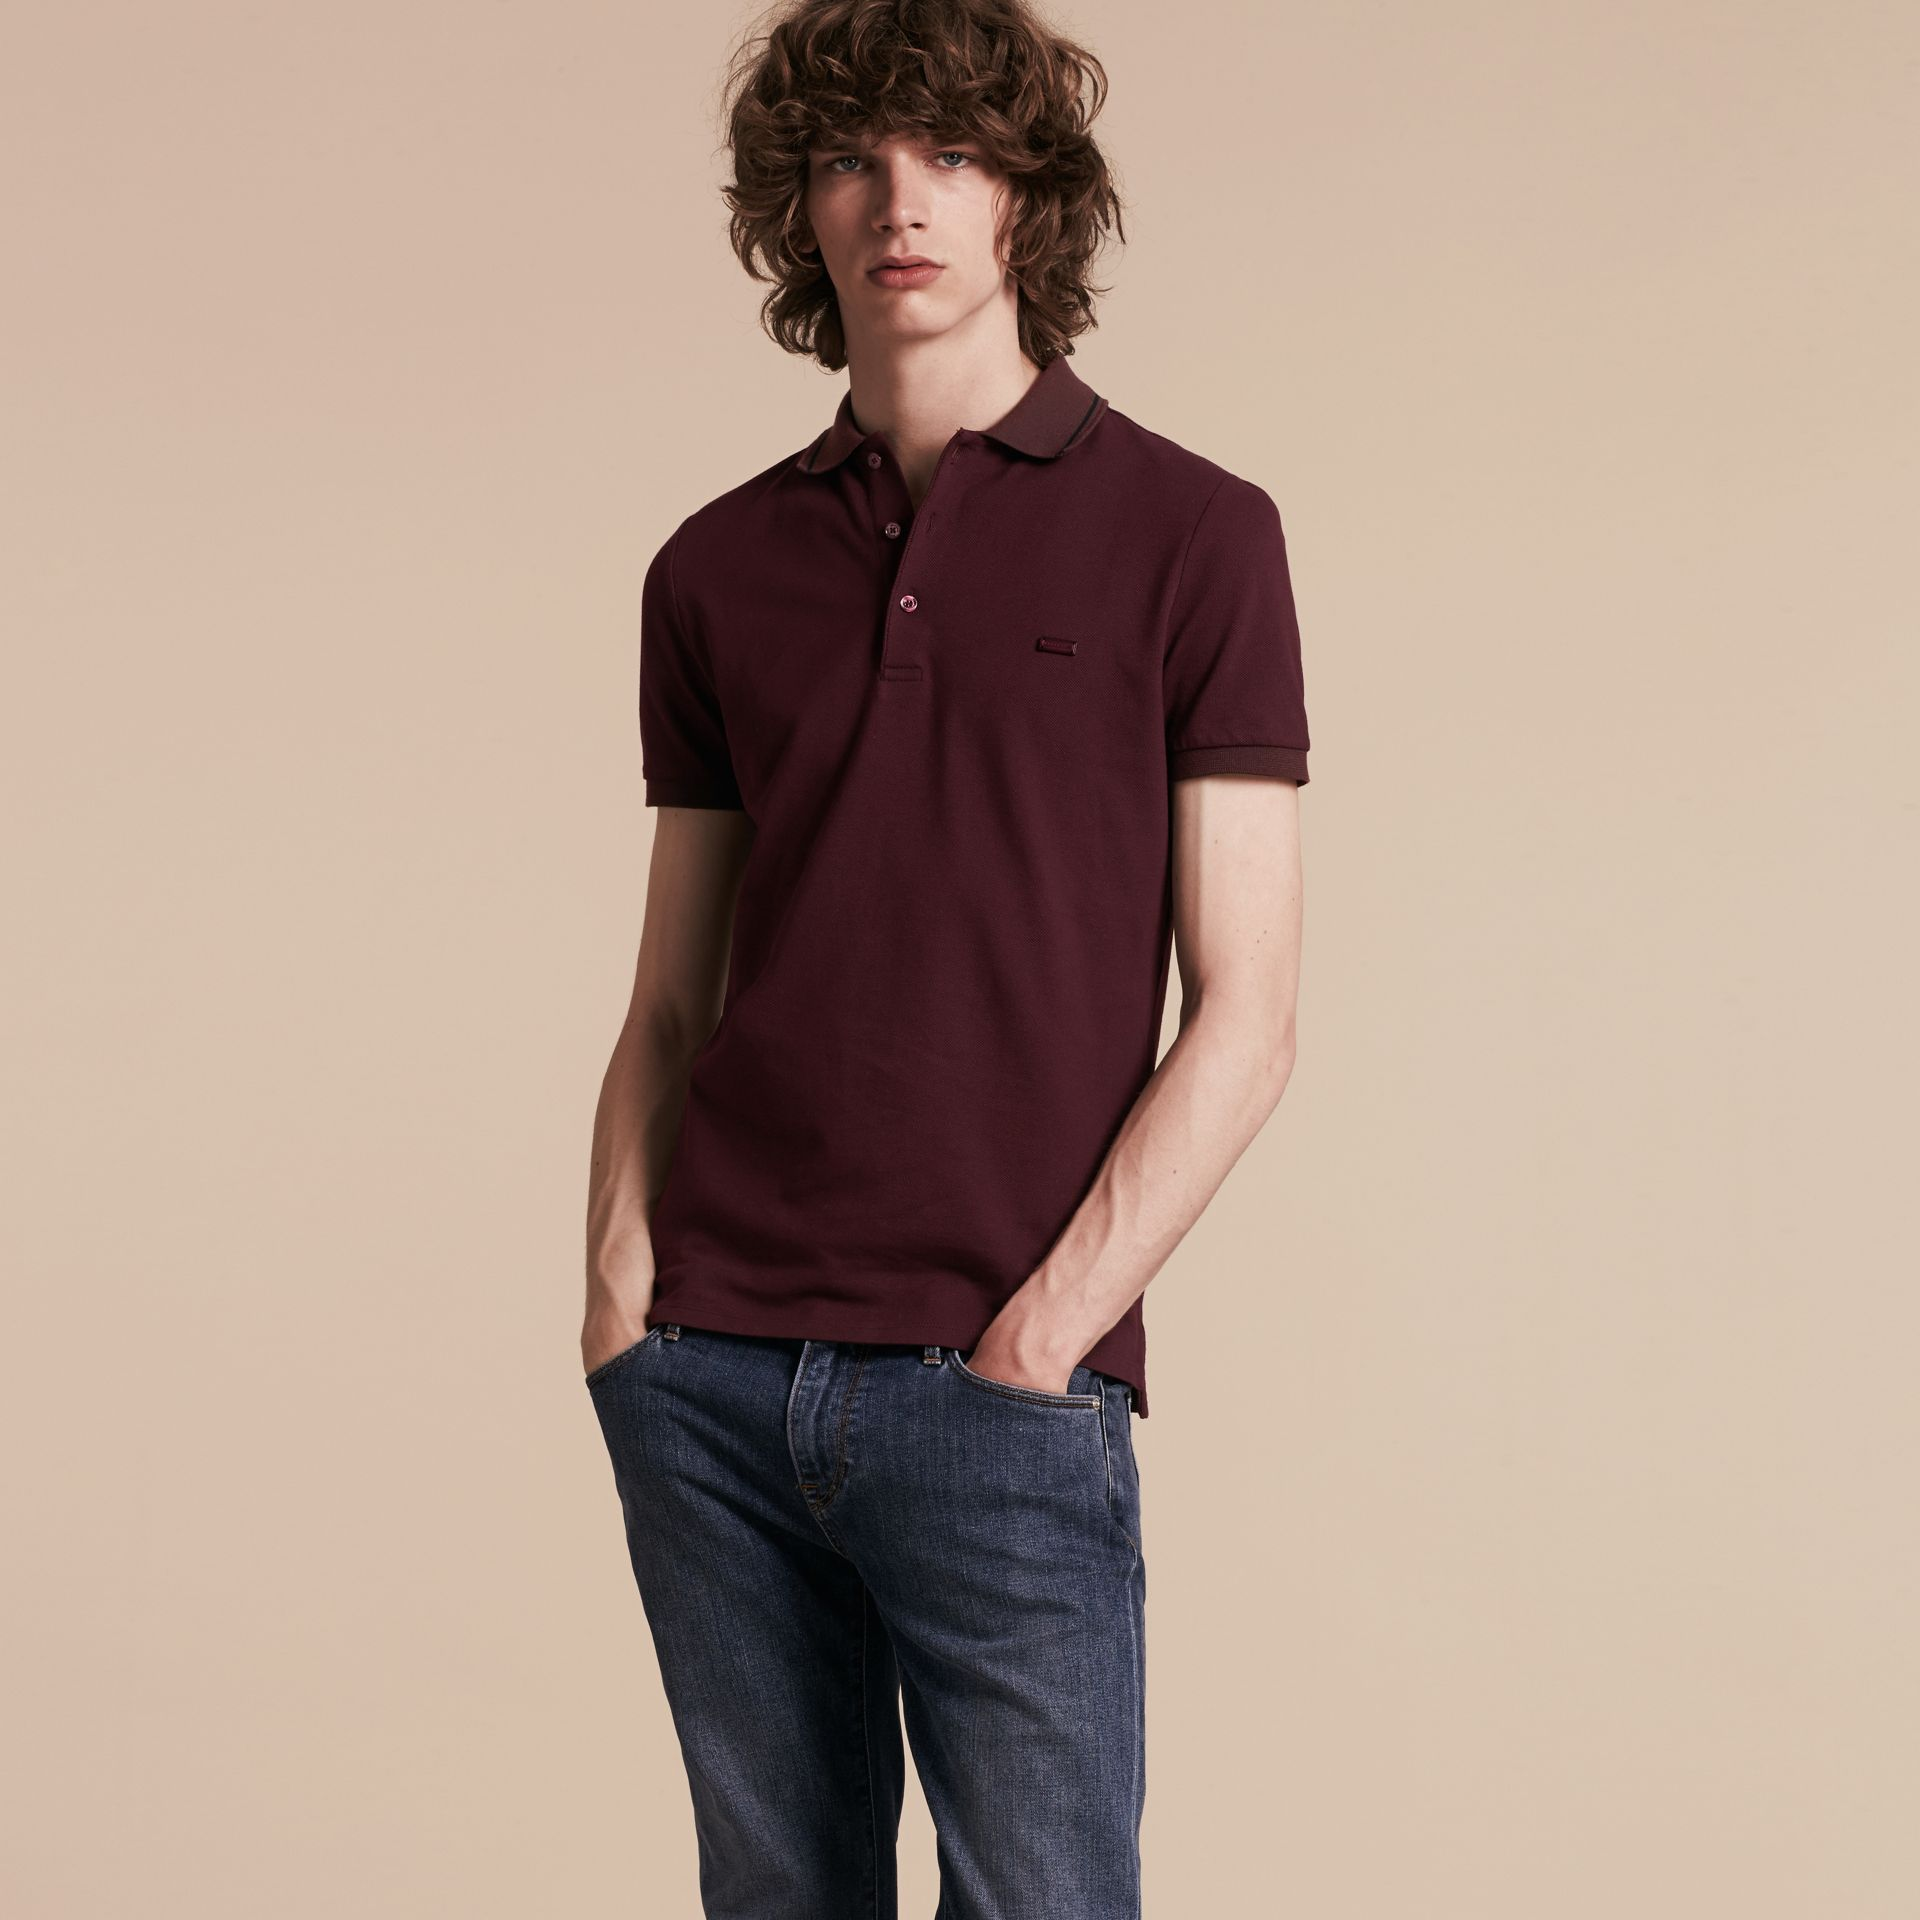 Burgundy red/black Contrast Trim Cotton Piqué Polo Shirt Burgundy Red/black - gallery image 6